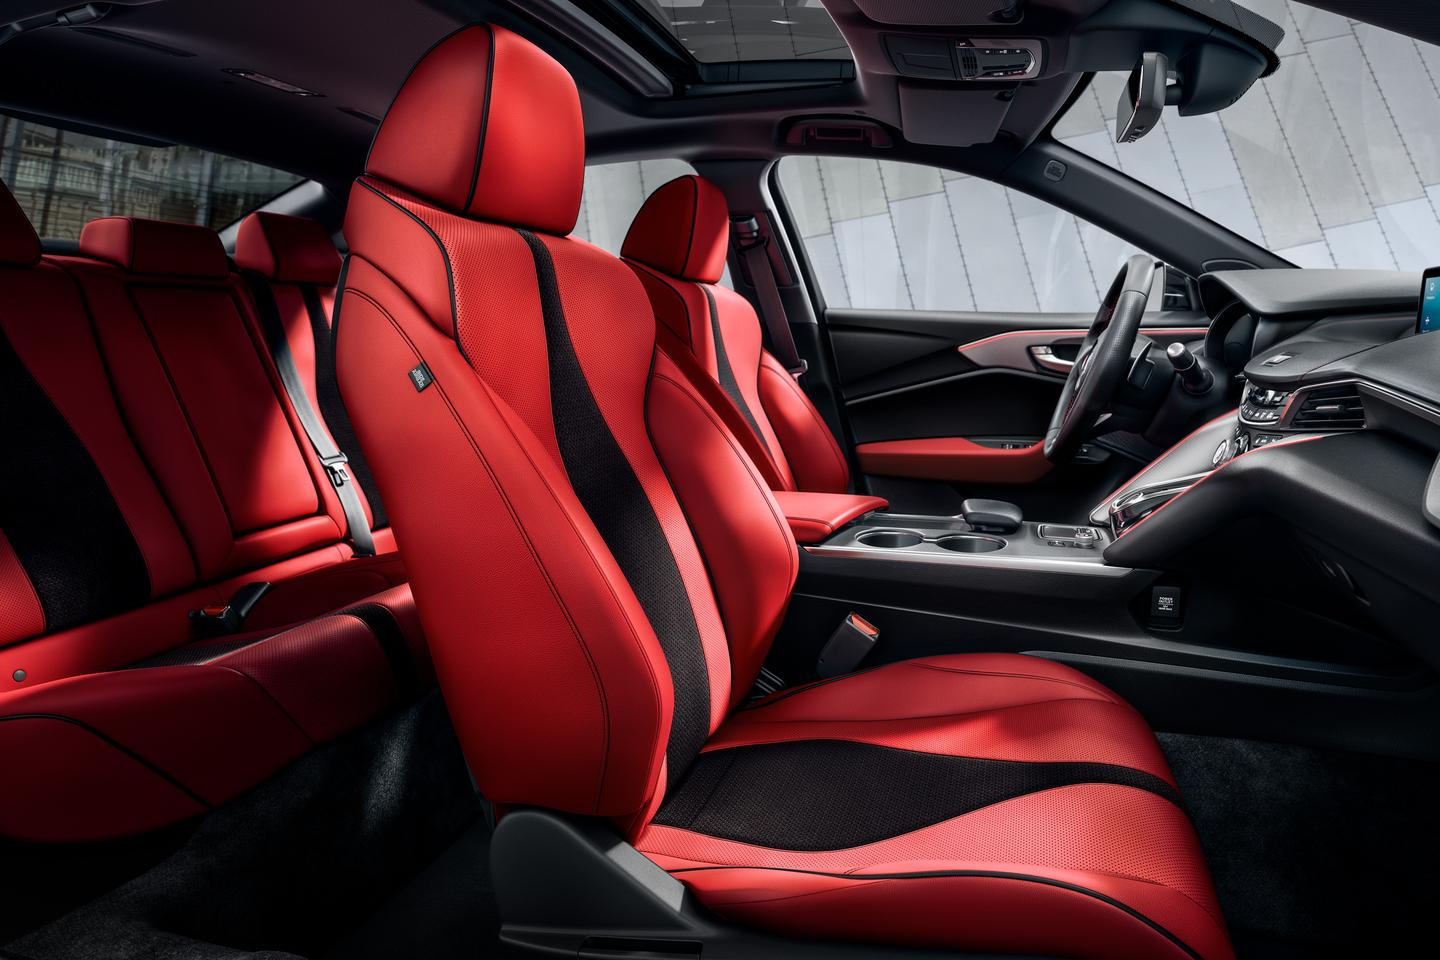 The new TLX gets 16-way adjustable sport seats up front